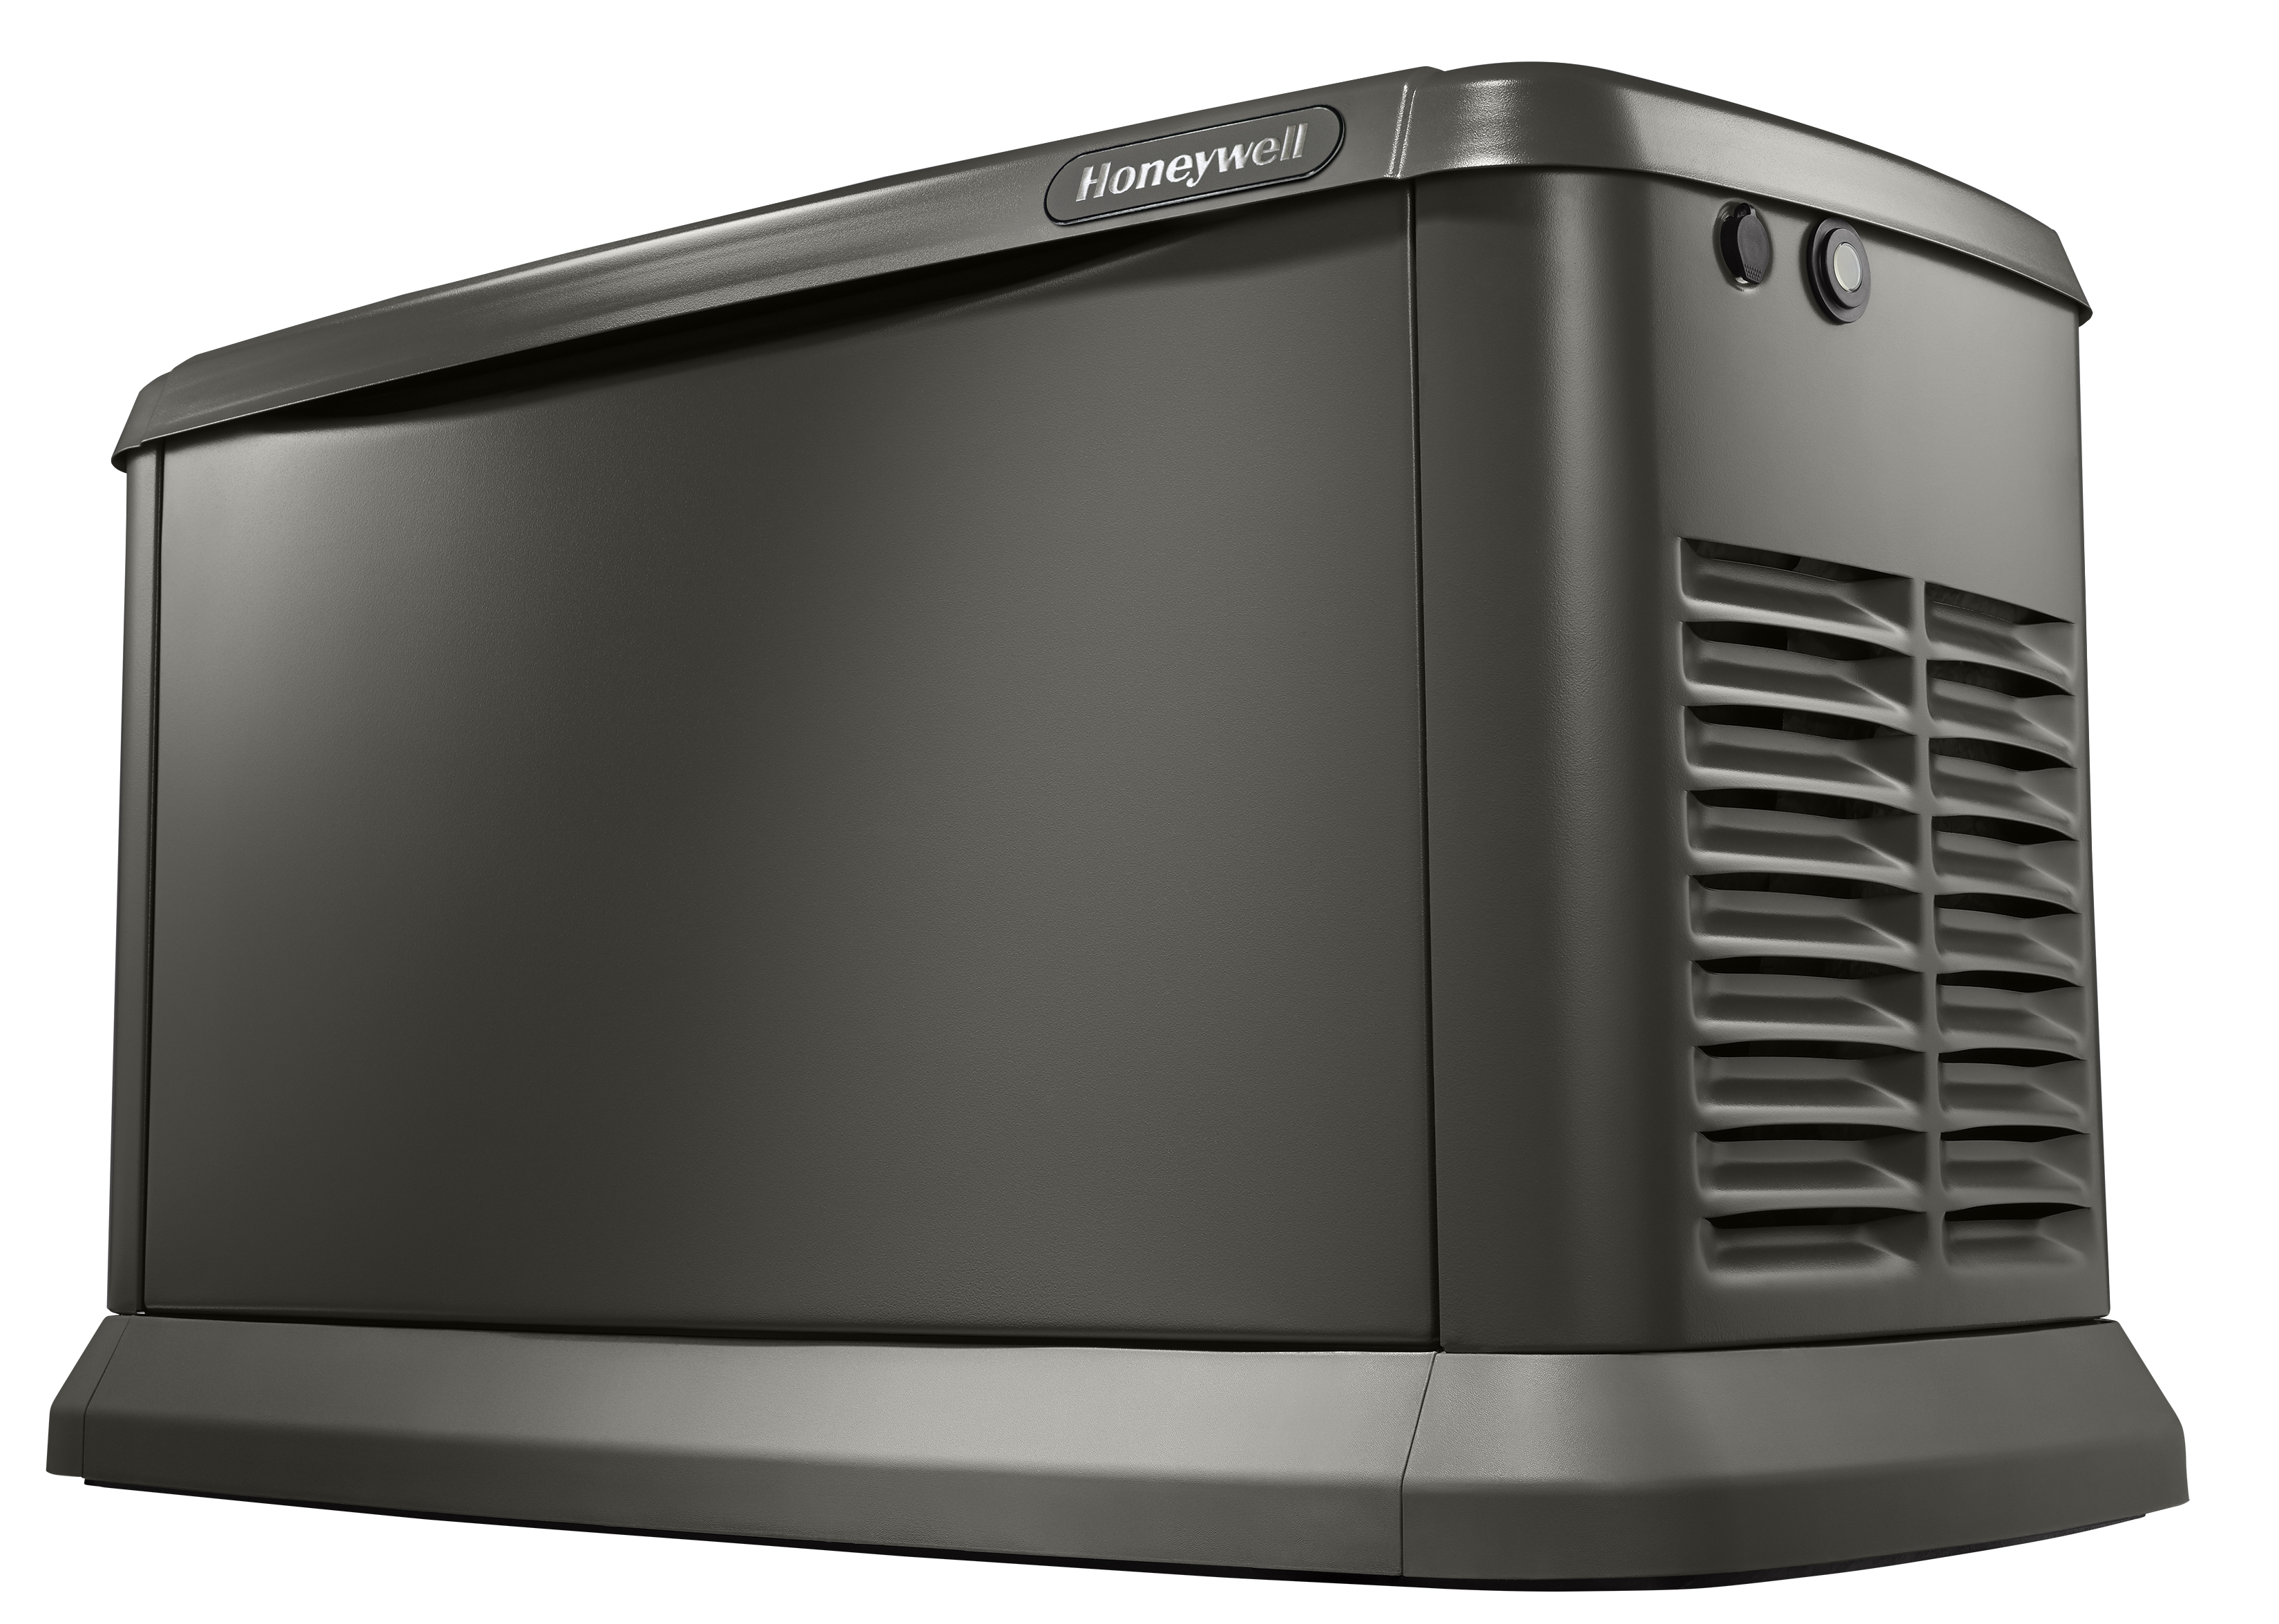 Honeywell 14kw Home Backup Generator Front